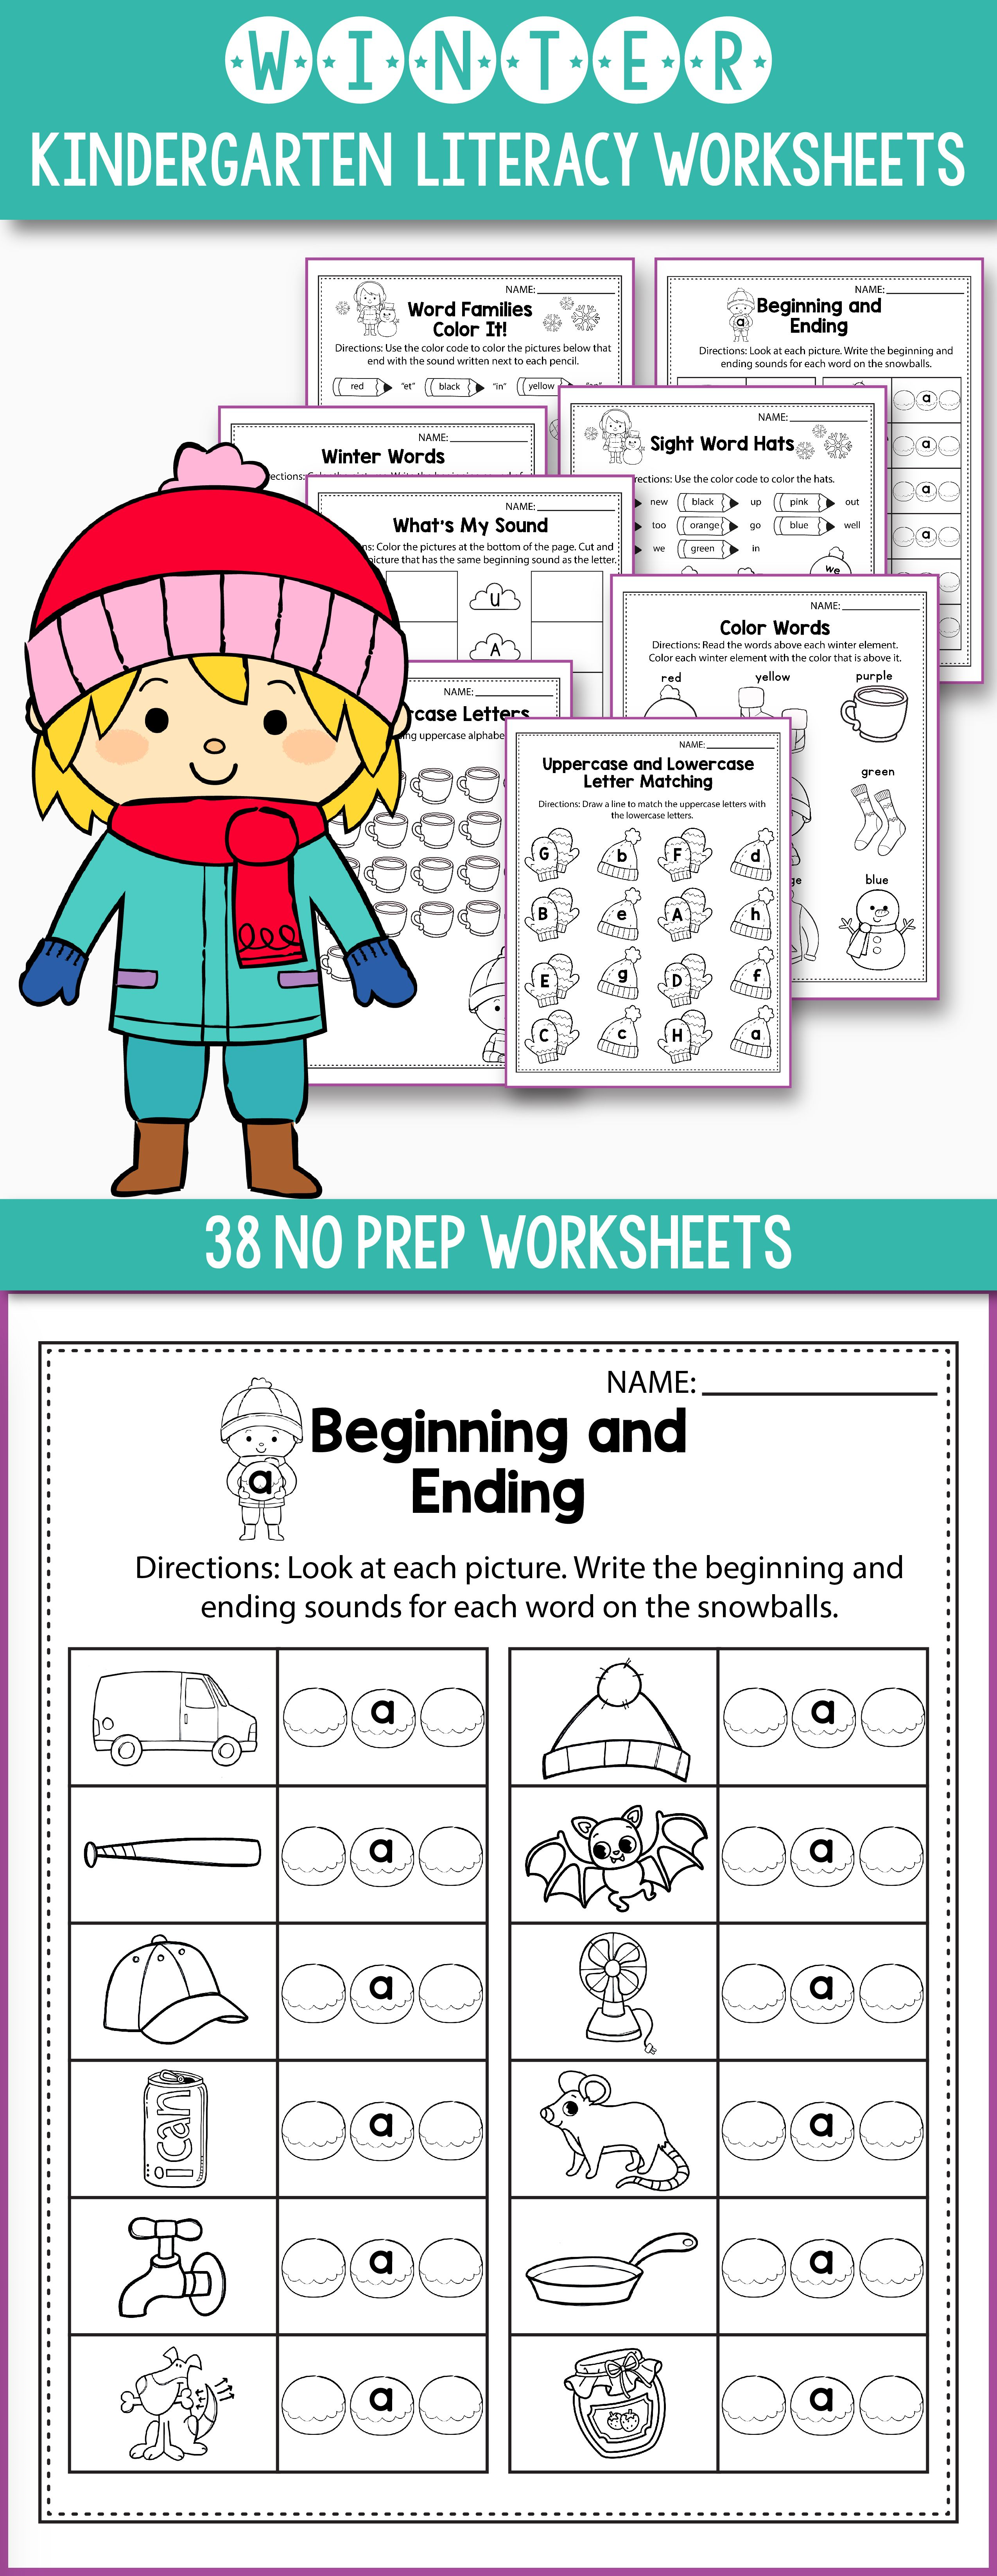 Worksheet Elkonin Boxes Worksheets Grass Fedjp Worksheet